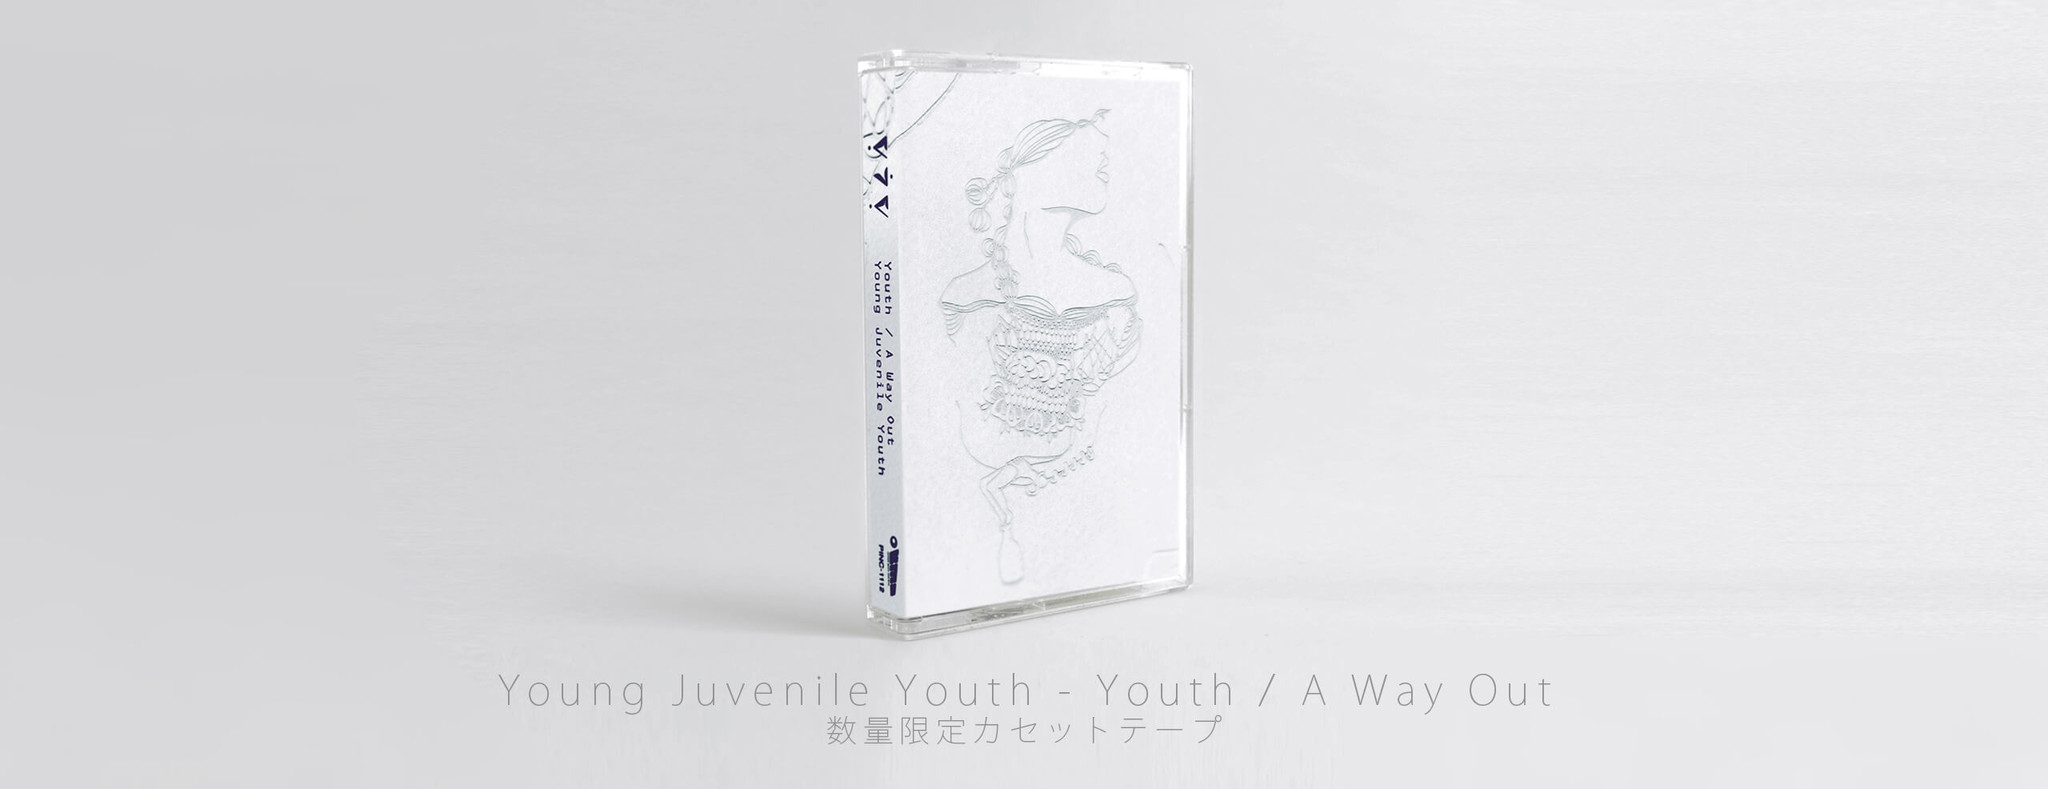 Young Juvenile Youth『Youth / A Way Out』数量限定カセットテープ